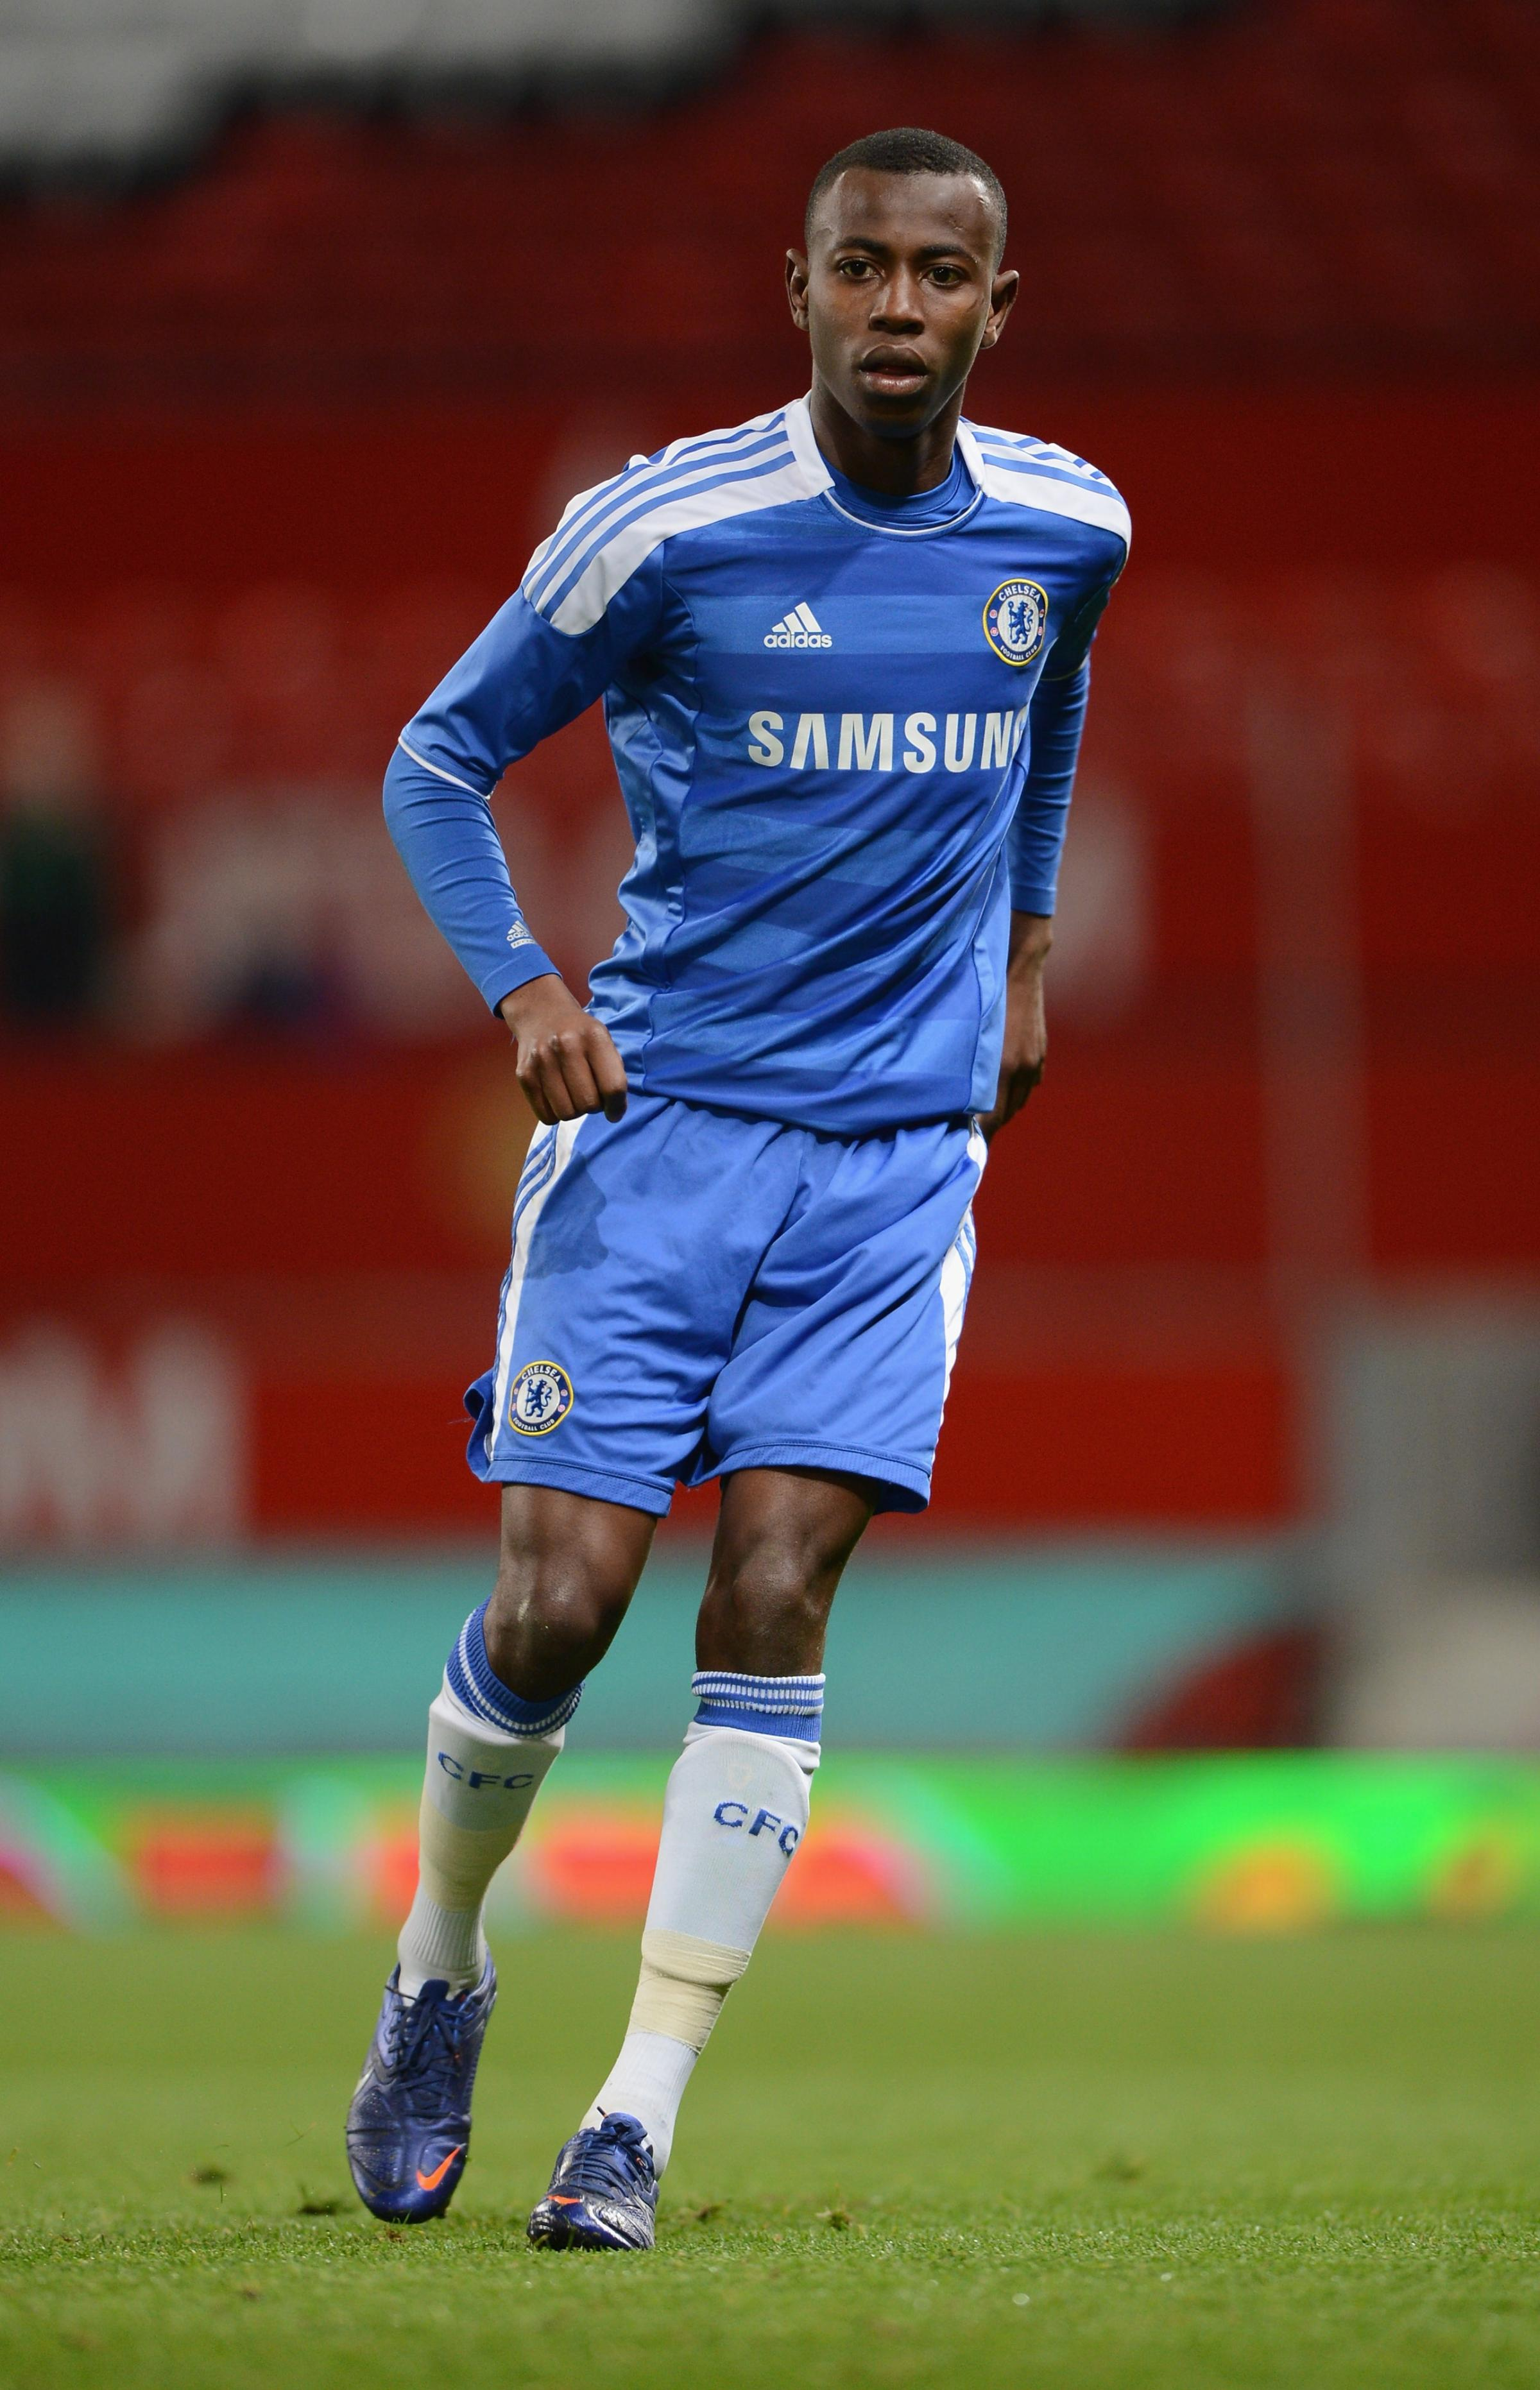 Adam Nditi during his time at Chelsea